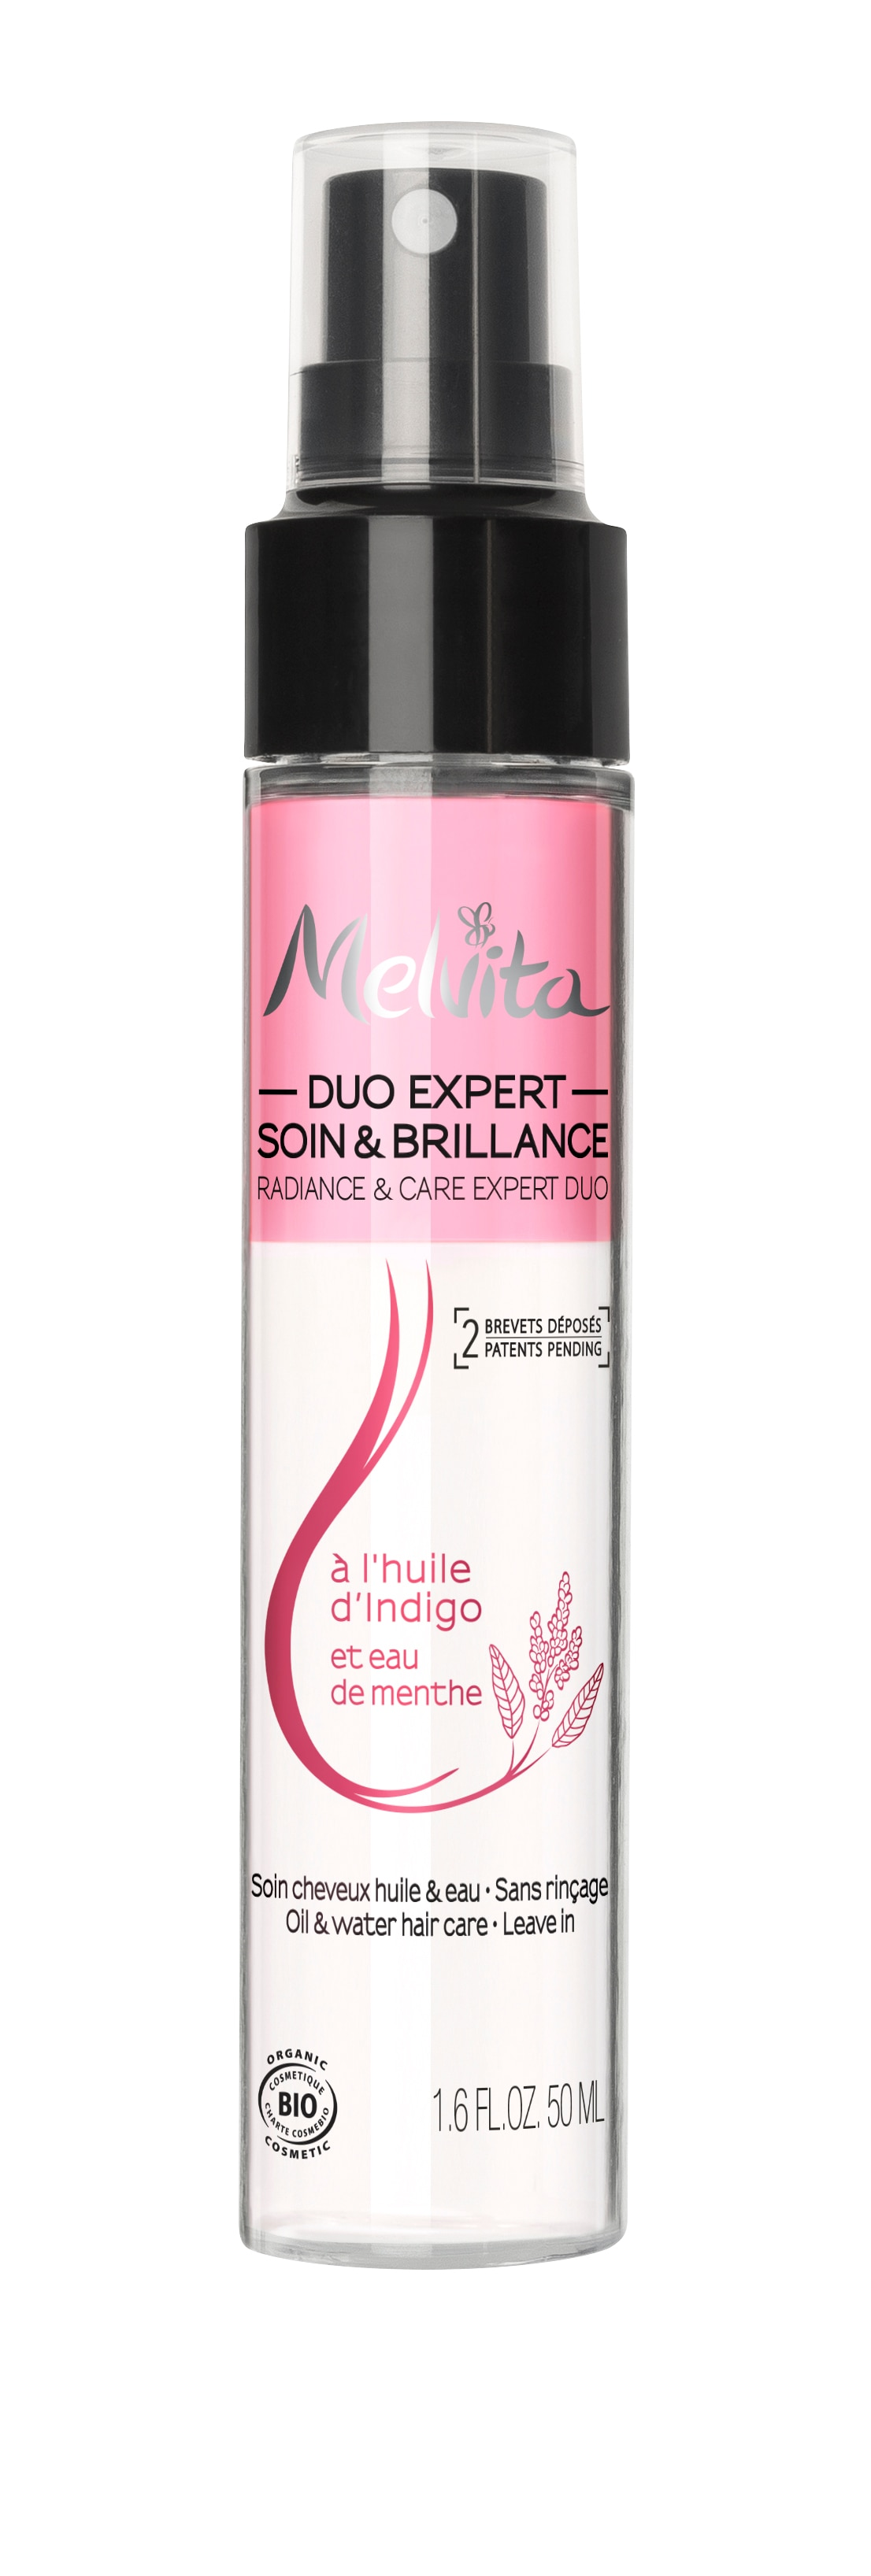 Expert duo - Radiance & care